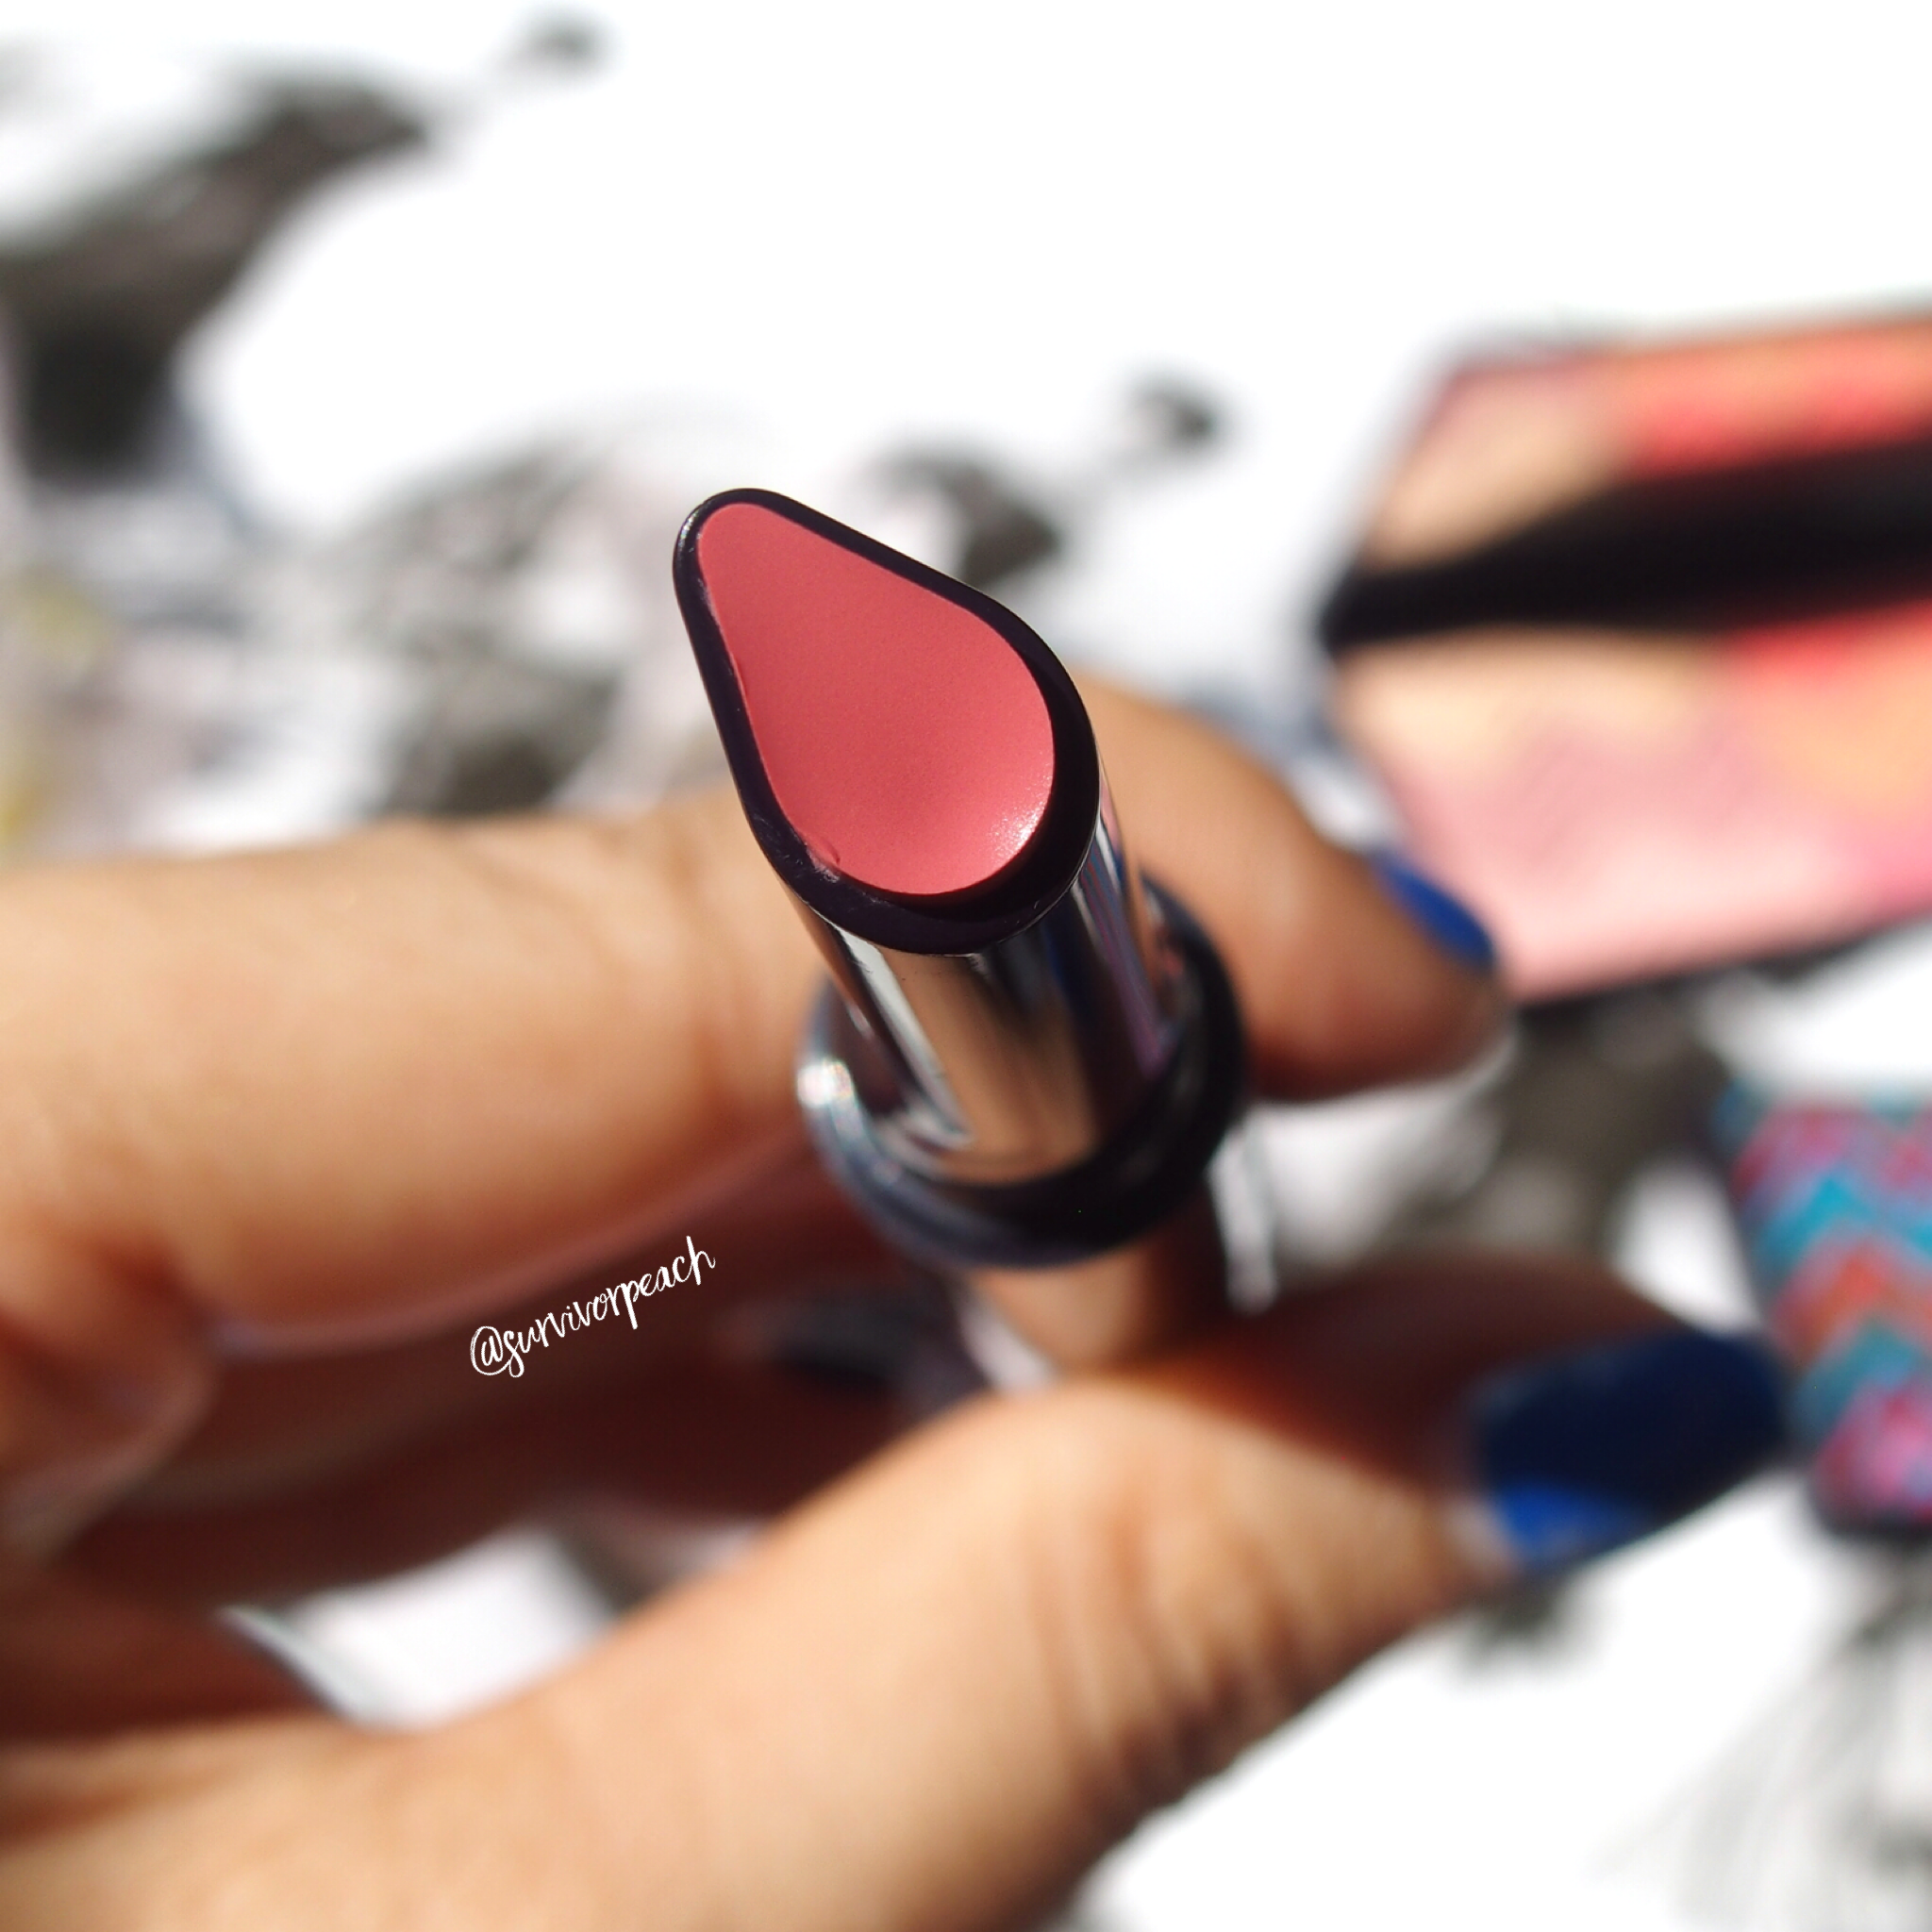 Rouge Expert Click sticks in #6 Rosy Flush